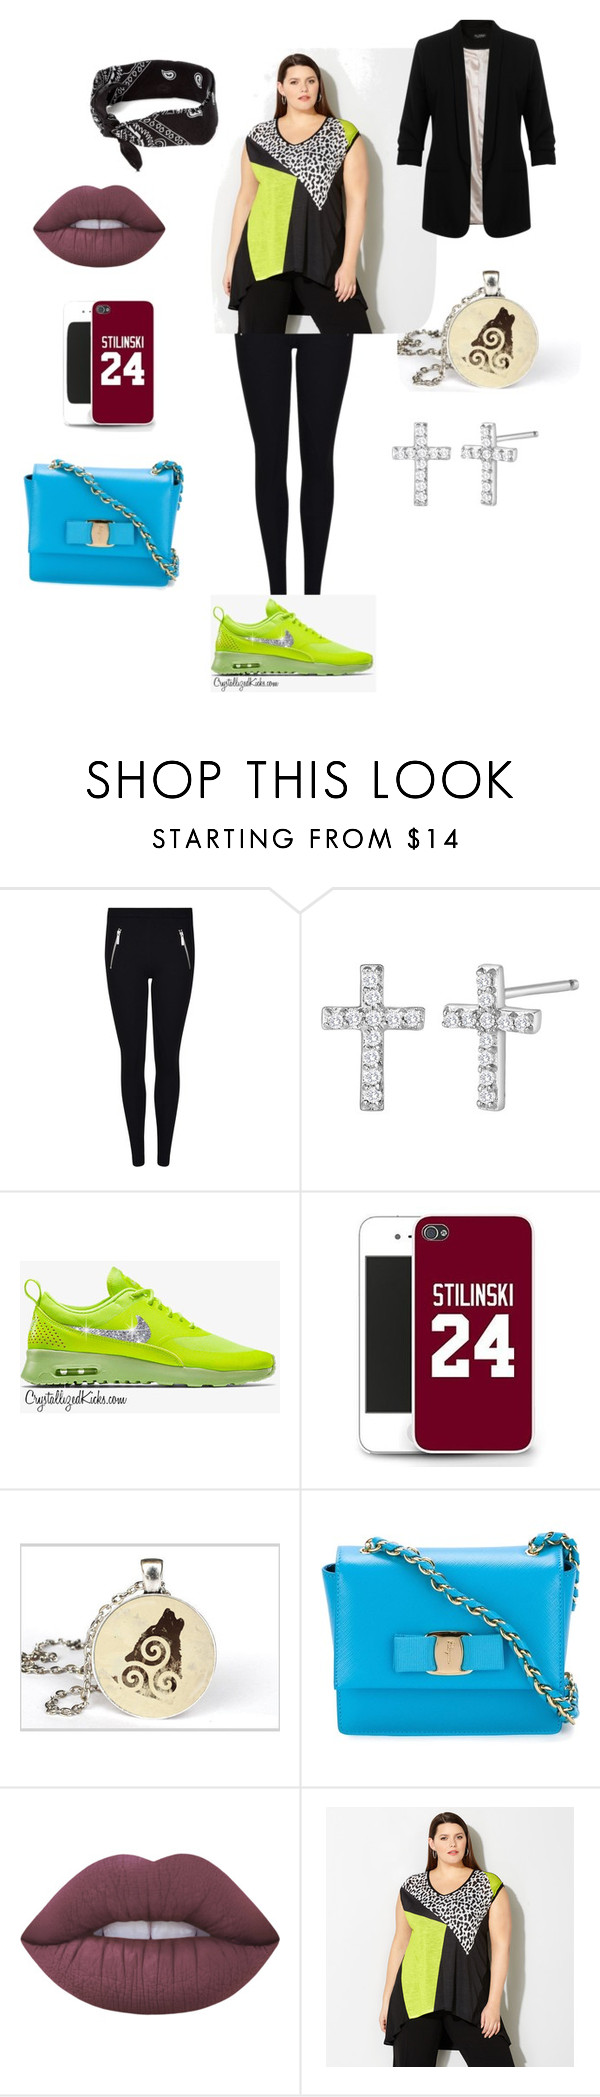 """""""Last week (changed)"""" by letyxftbieber ❤ liked on Polyvore featuring MICHAEL Michael Kors, claire's, CO, Salvatore Ferragamo, Lime Crime, Avenue and Miss Selfridge"""